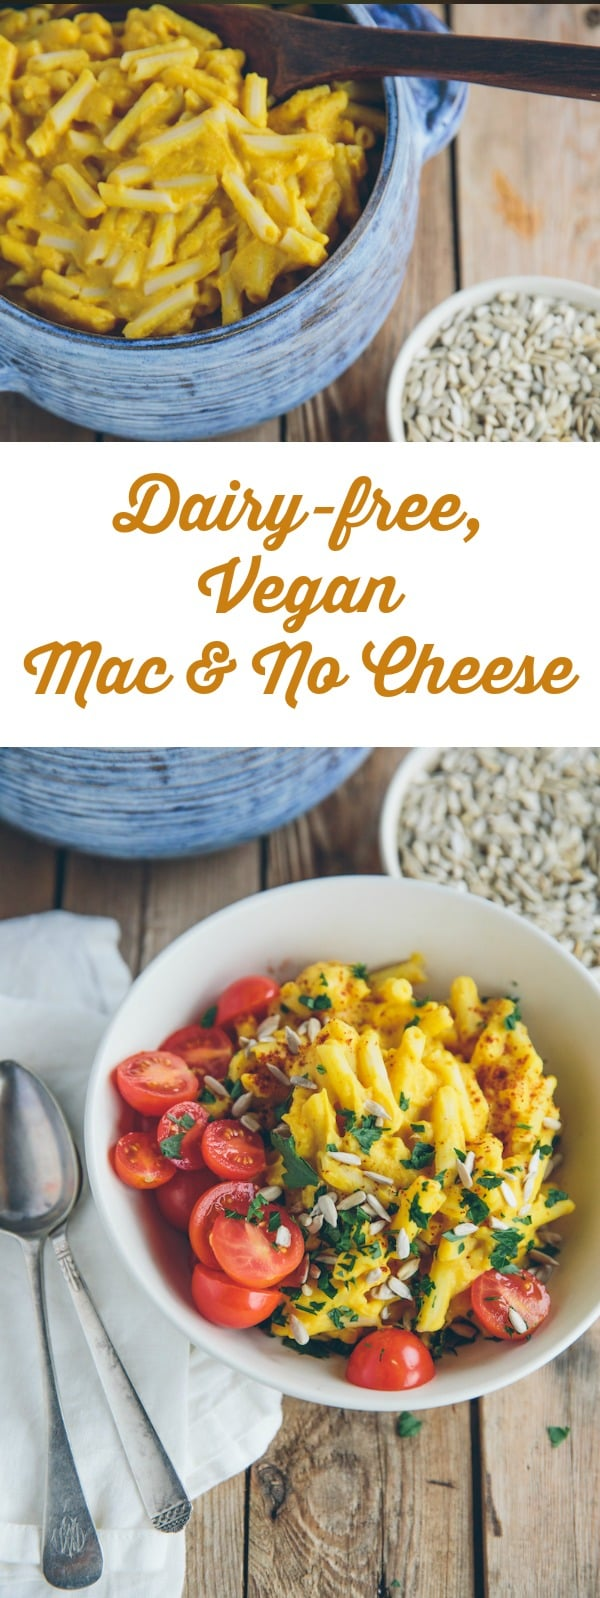 Dairy allergies become a non-issue when you opt to make this dairy-free, vegan version of macaroni and cheese.